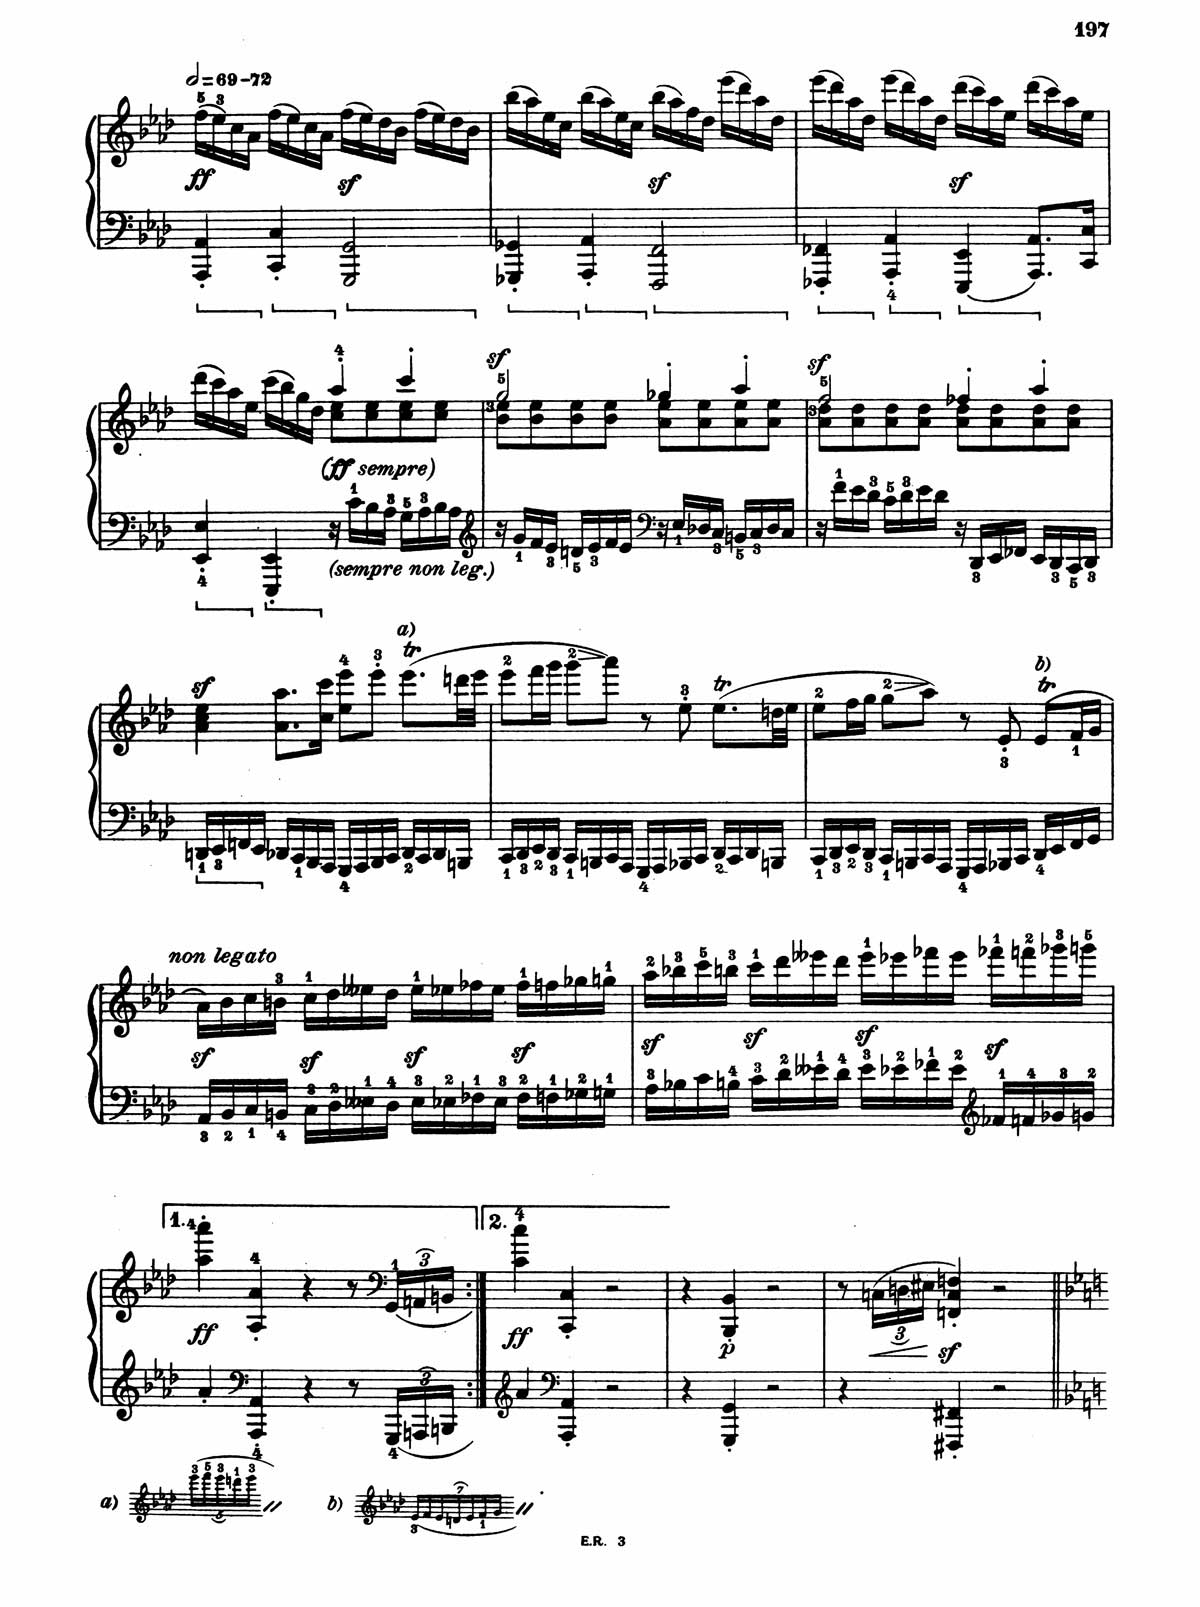 Beethoven Piano Sonata 32-5 sheet music